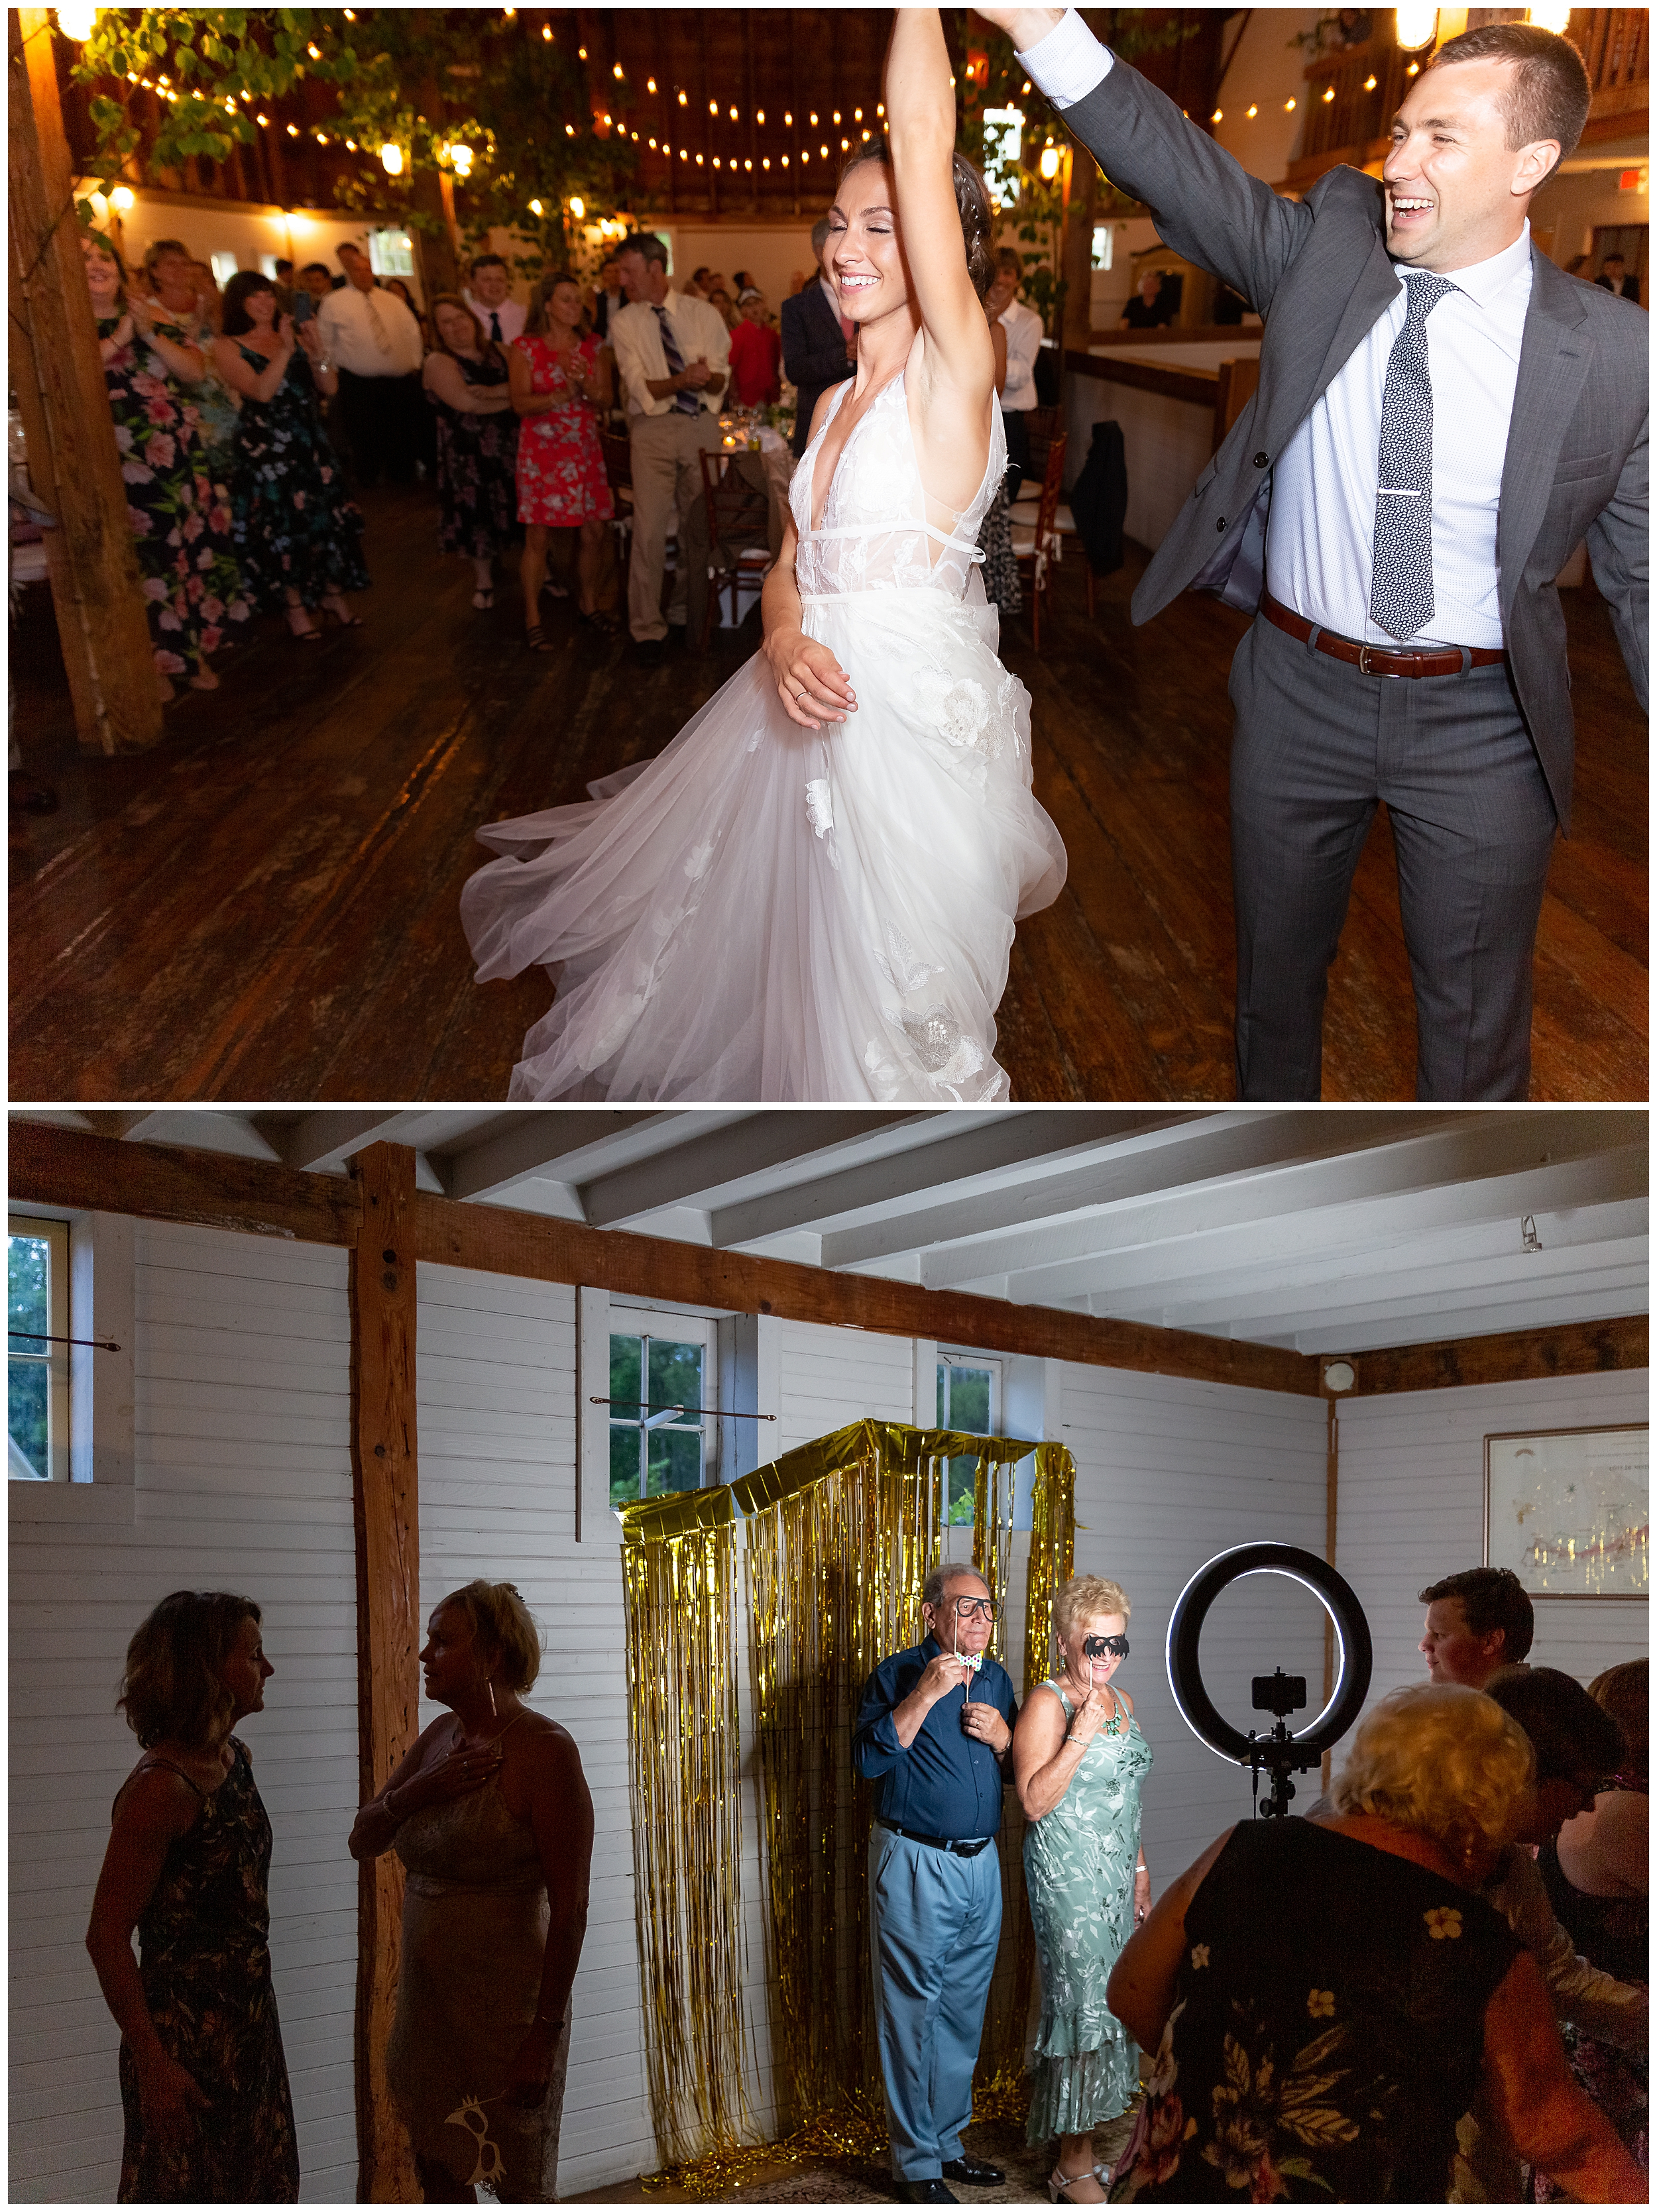 Sophia and Kellen have a fun first dance and the guests proceed to enjoy the DIY photobooth.